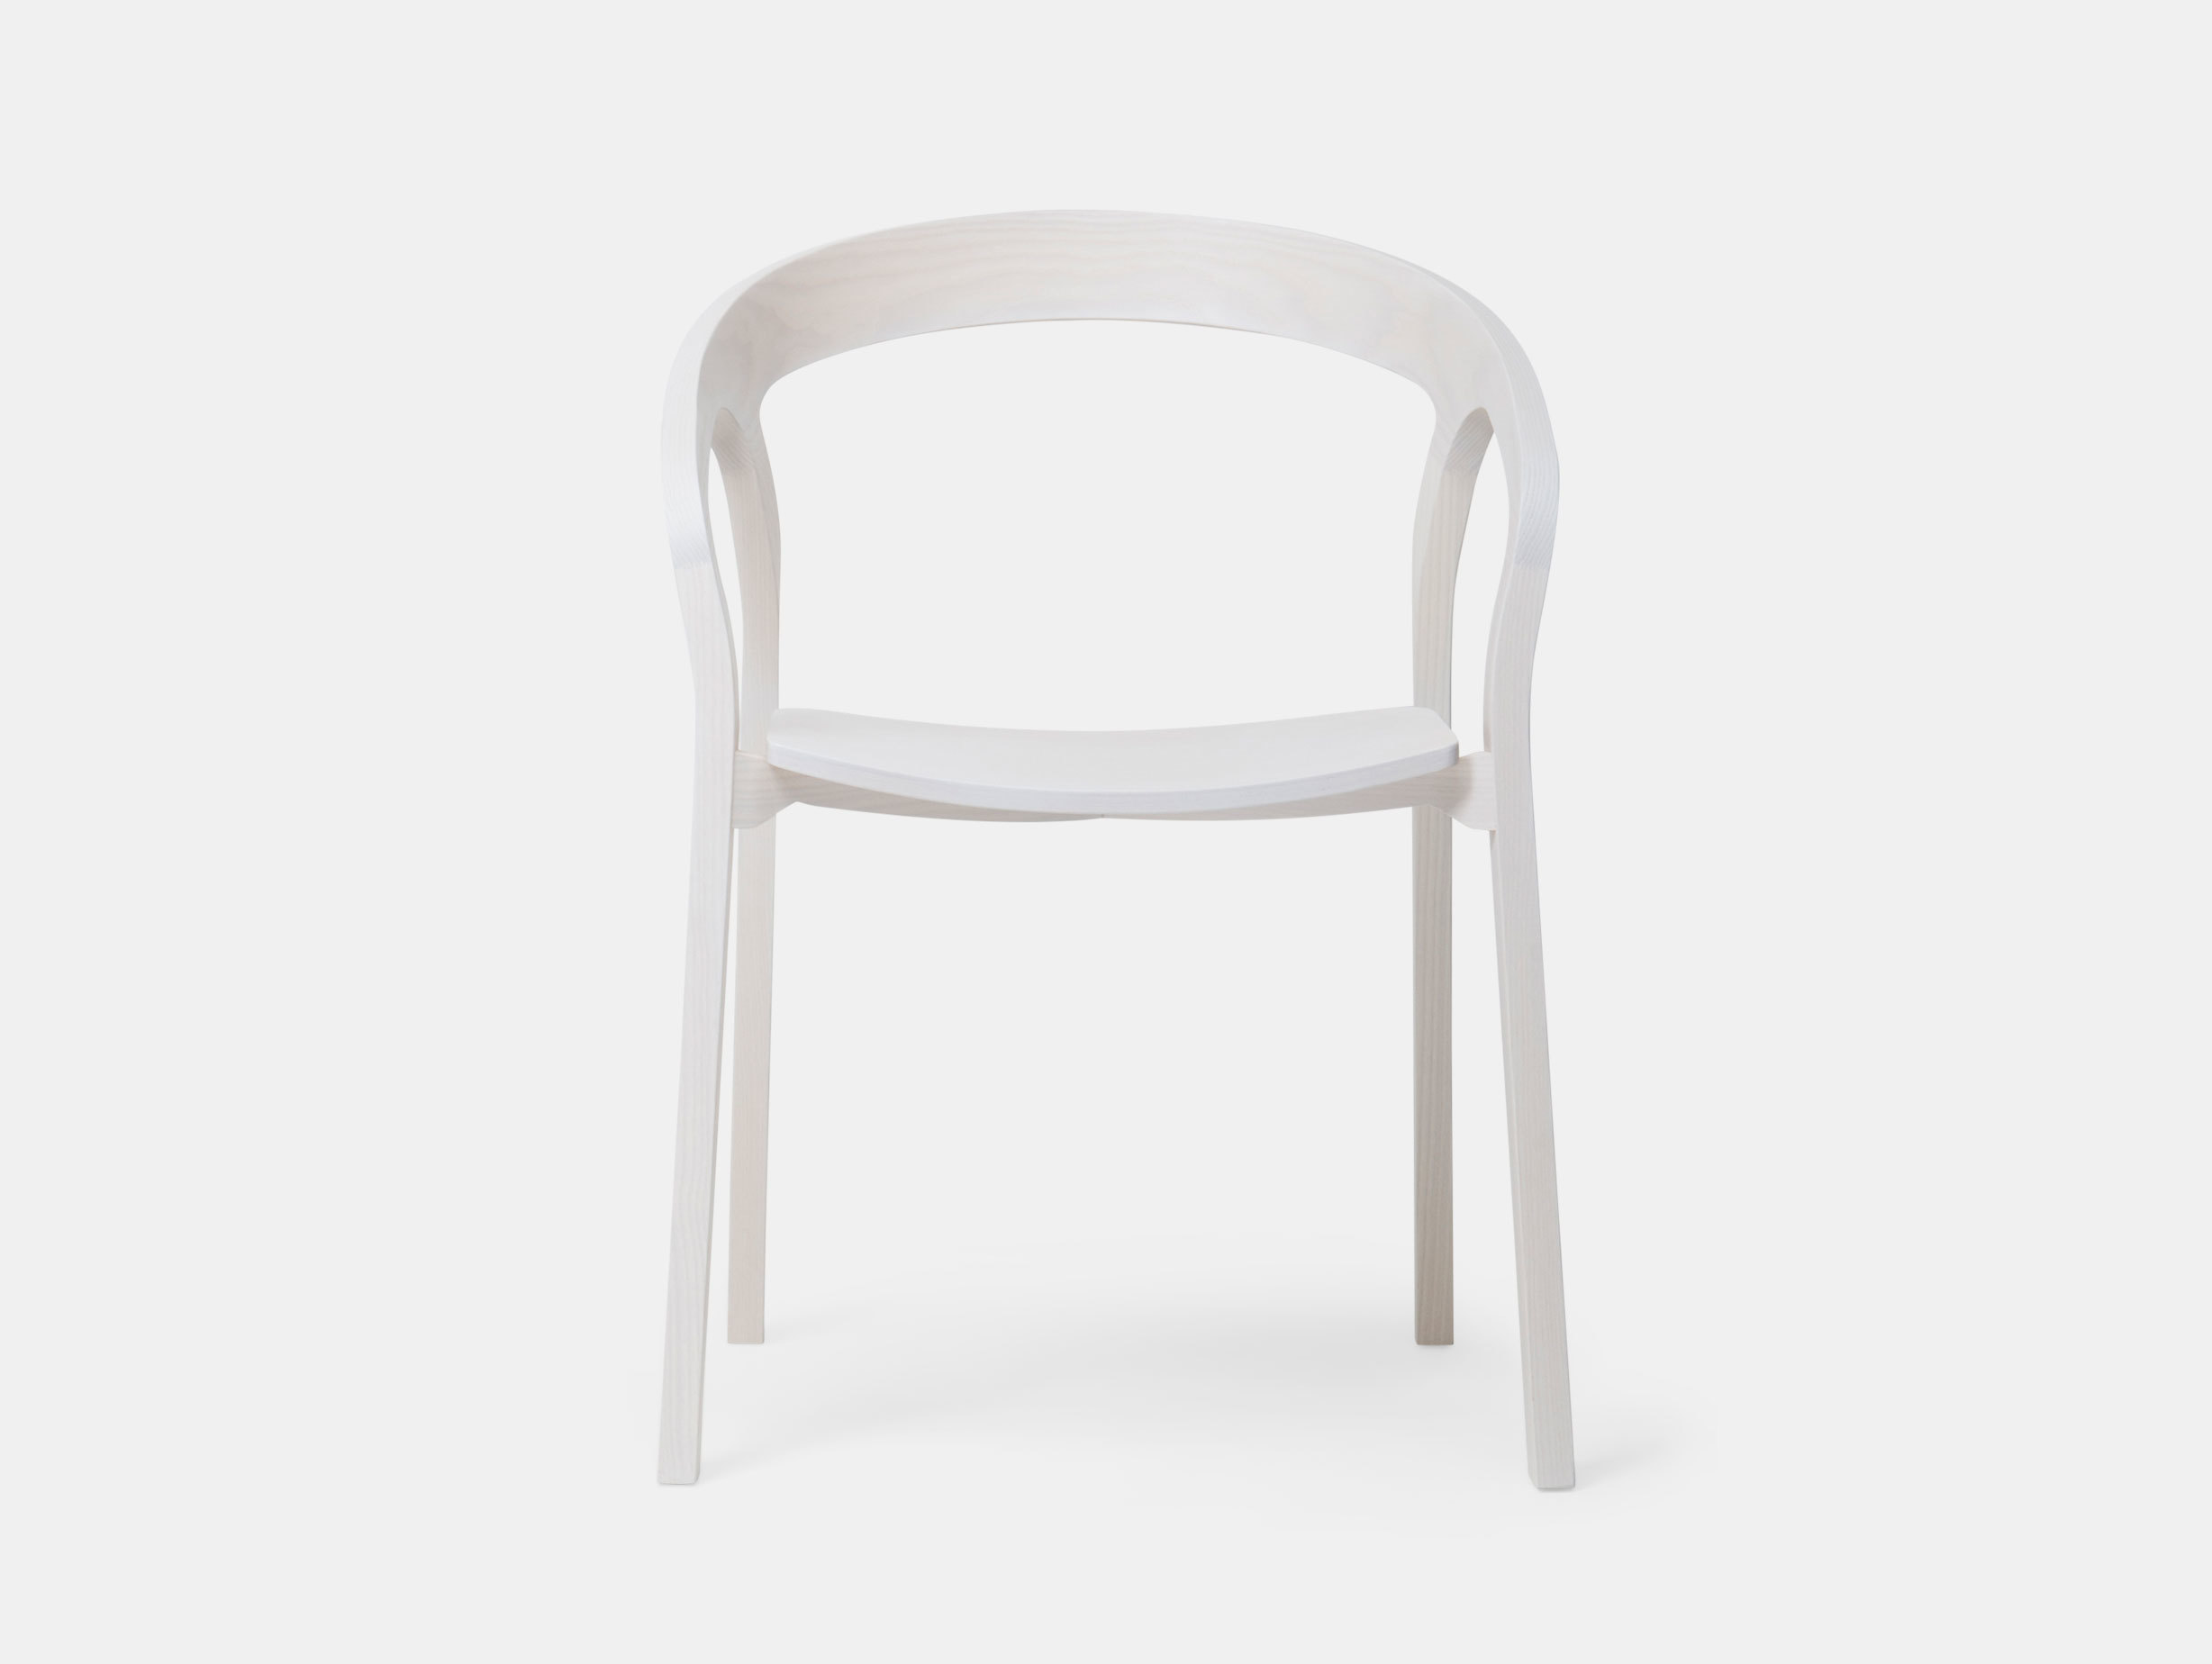 Mattiazzi She Said Chair White Ash Studio Nitzan Cohen